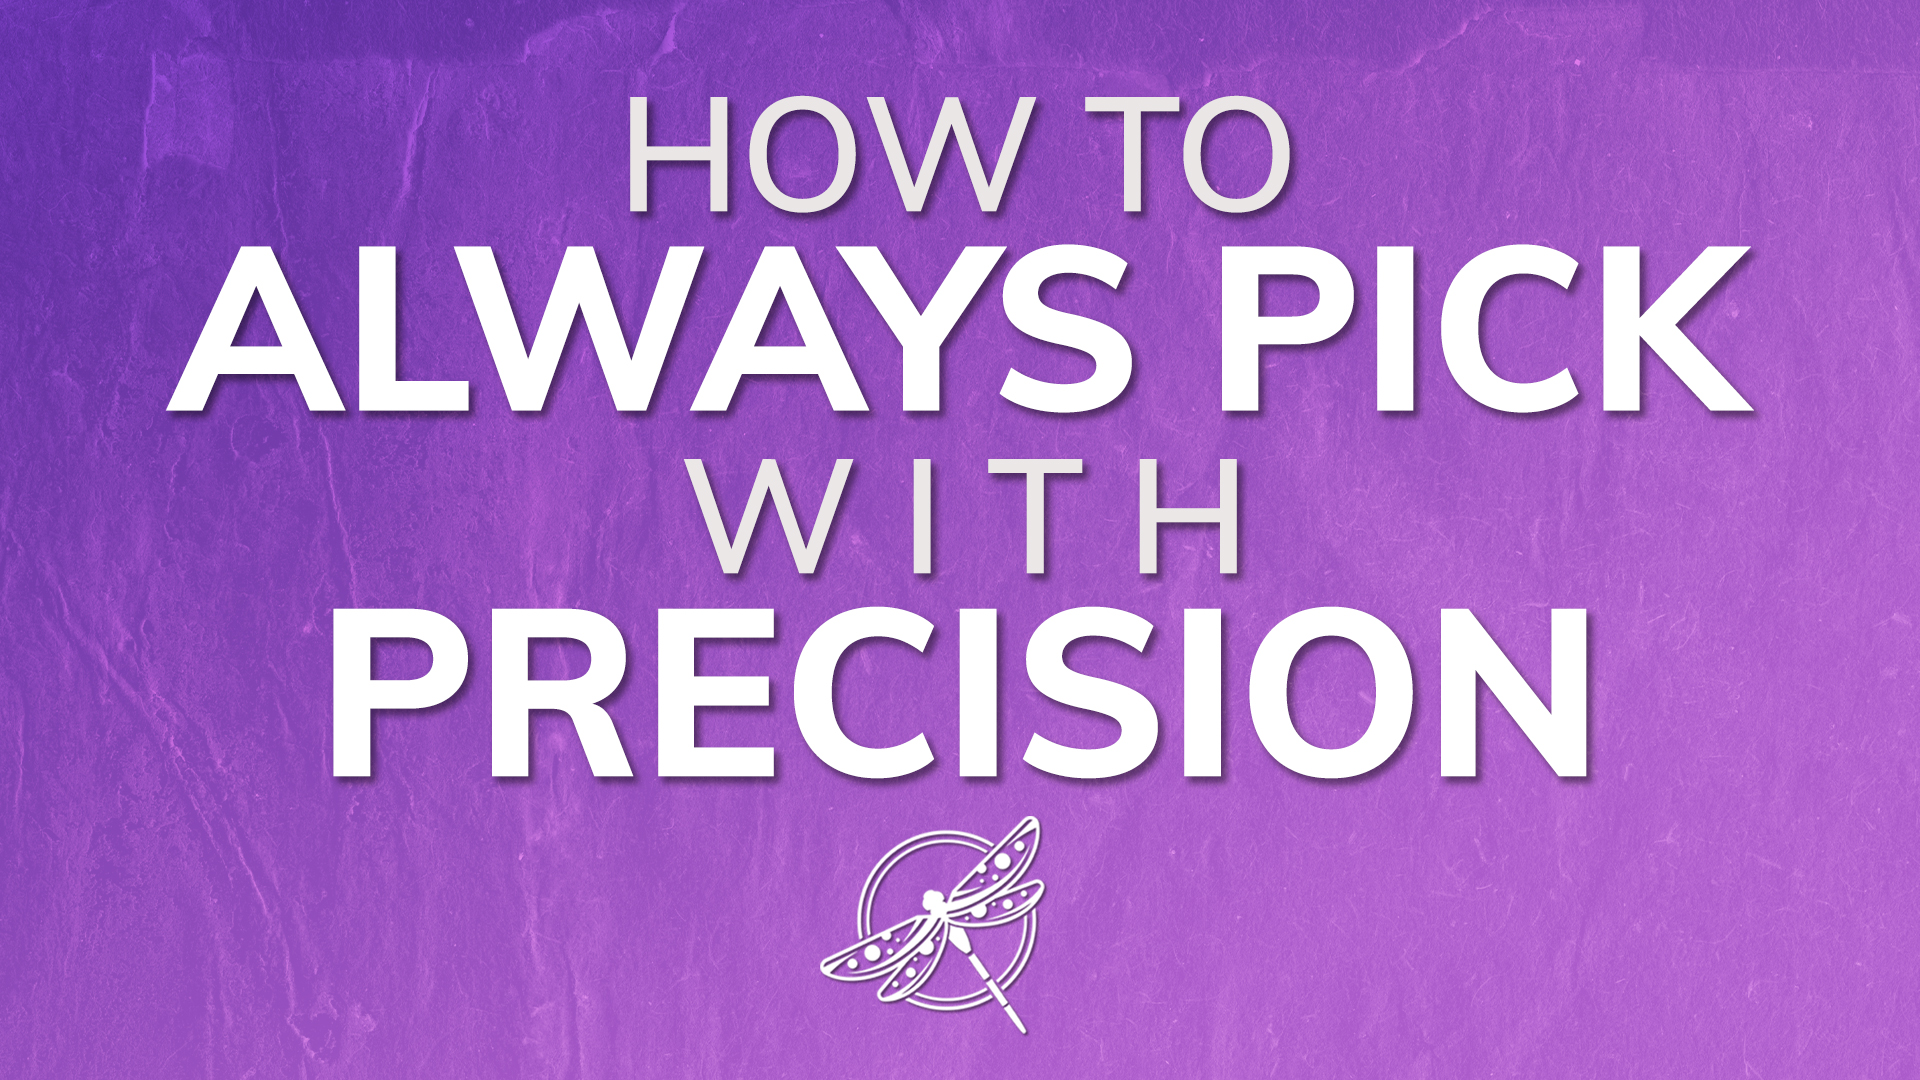 How to always pick with precision video